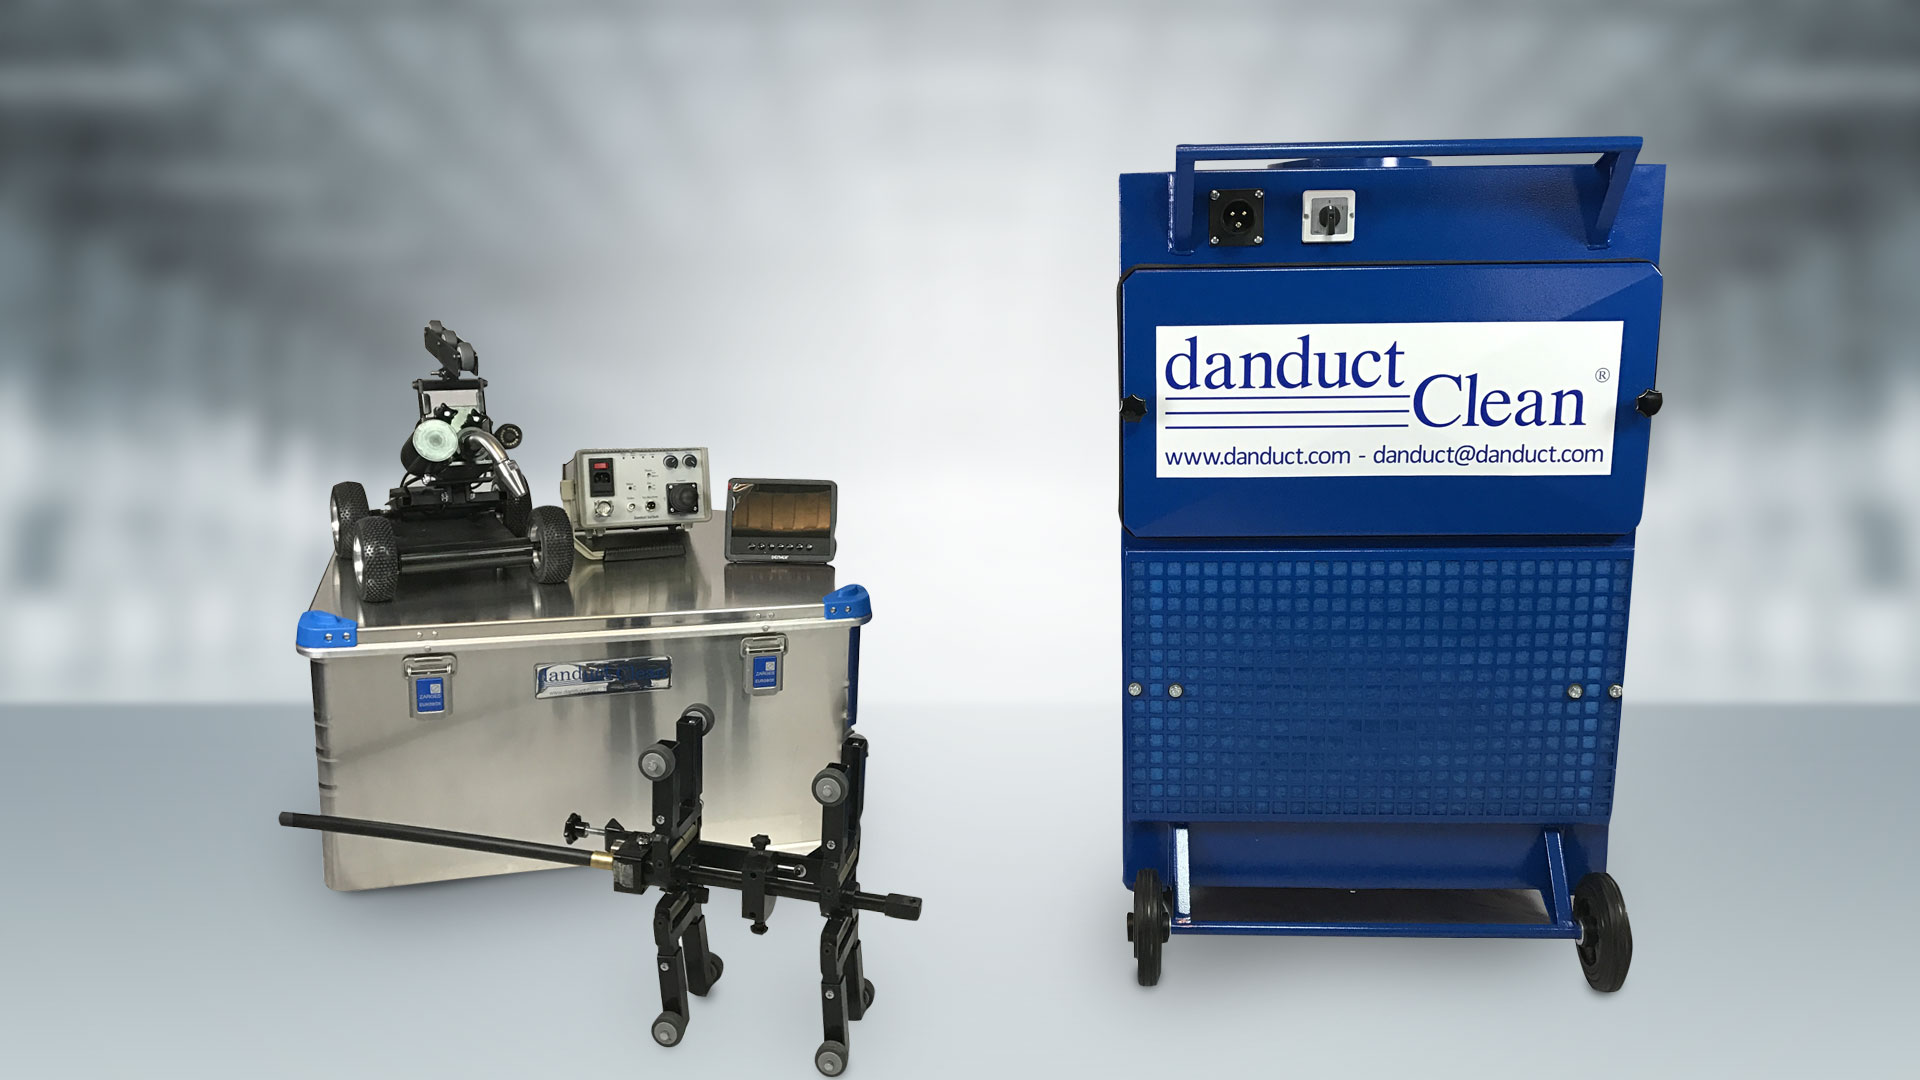 The danduct equipment for the cleaning of ventilation ducts